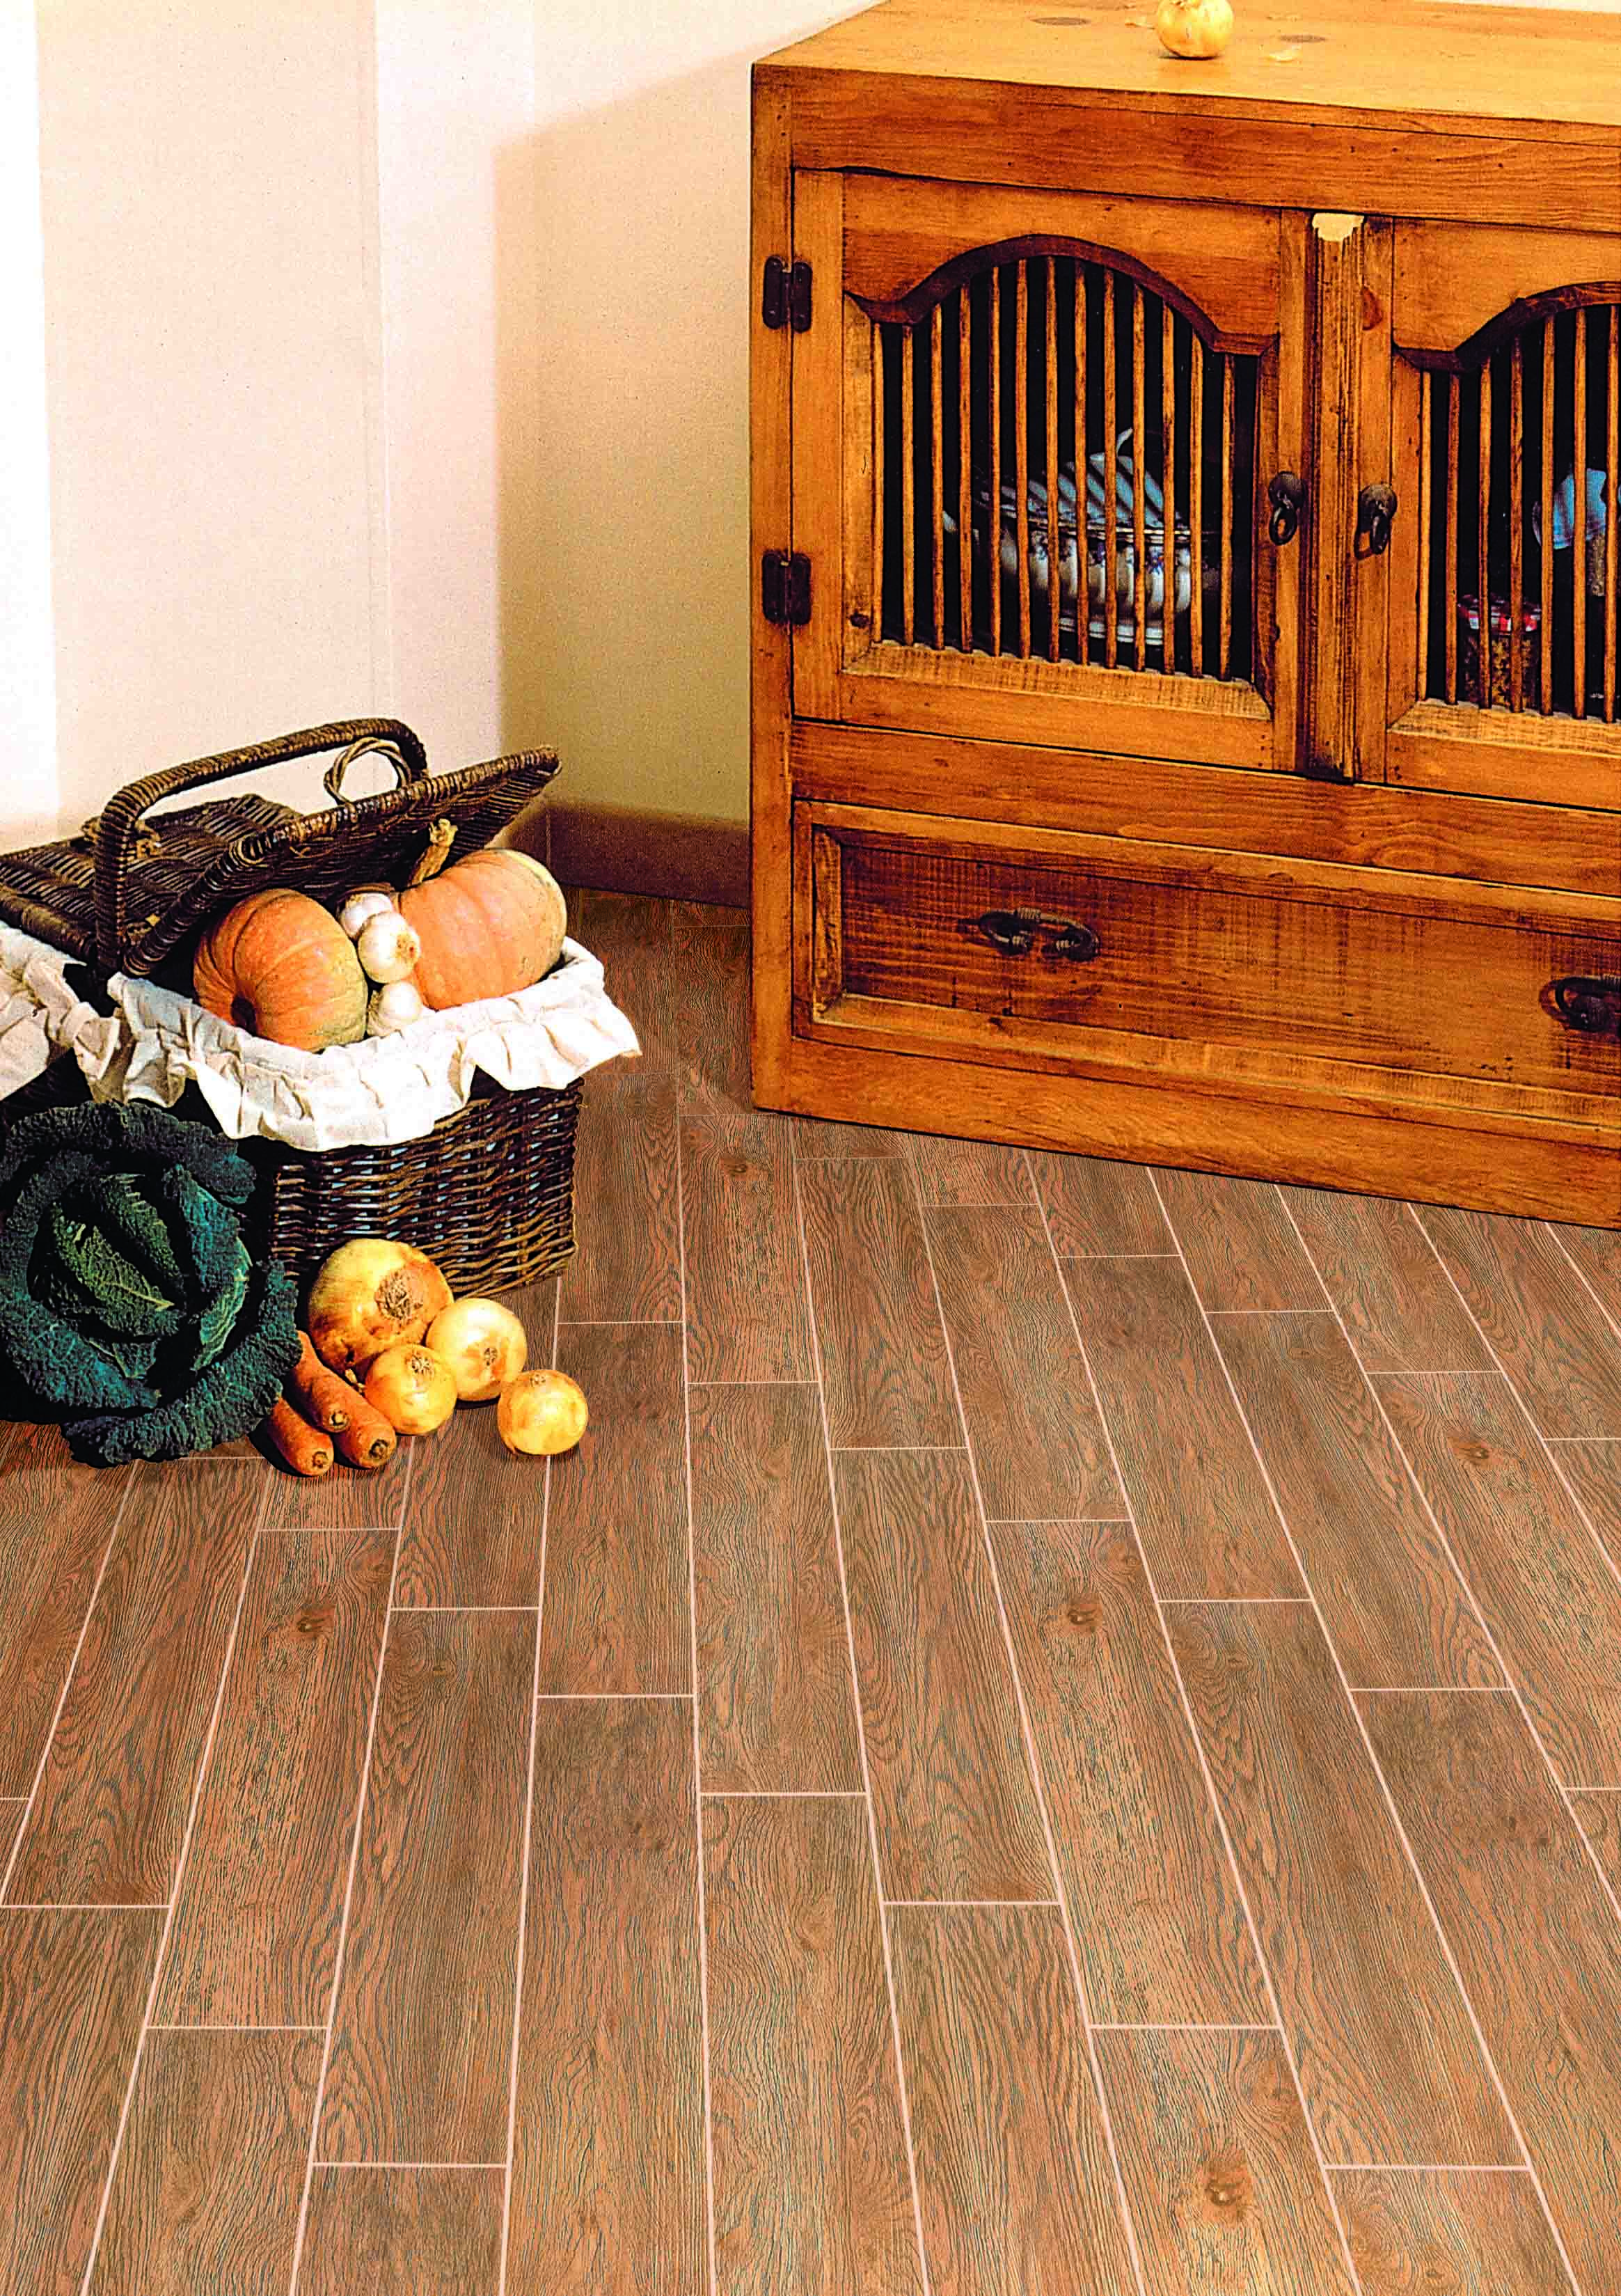 Wooden Tiles,Name: GRACELAND OAK ,porcelain tile,floor tiles from ...